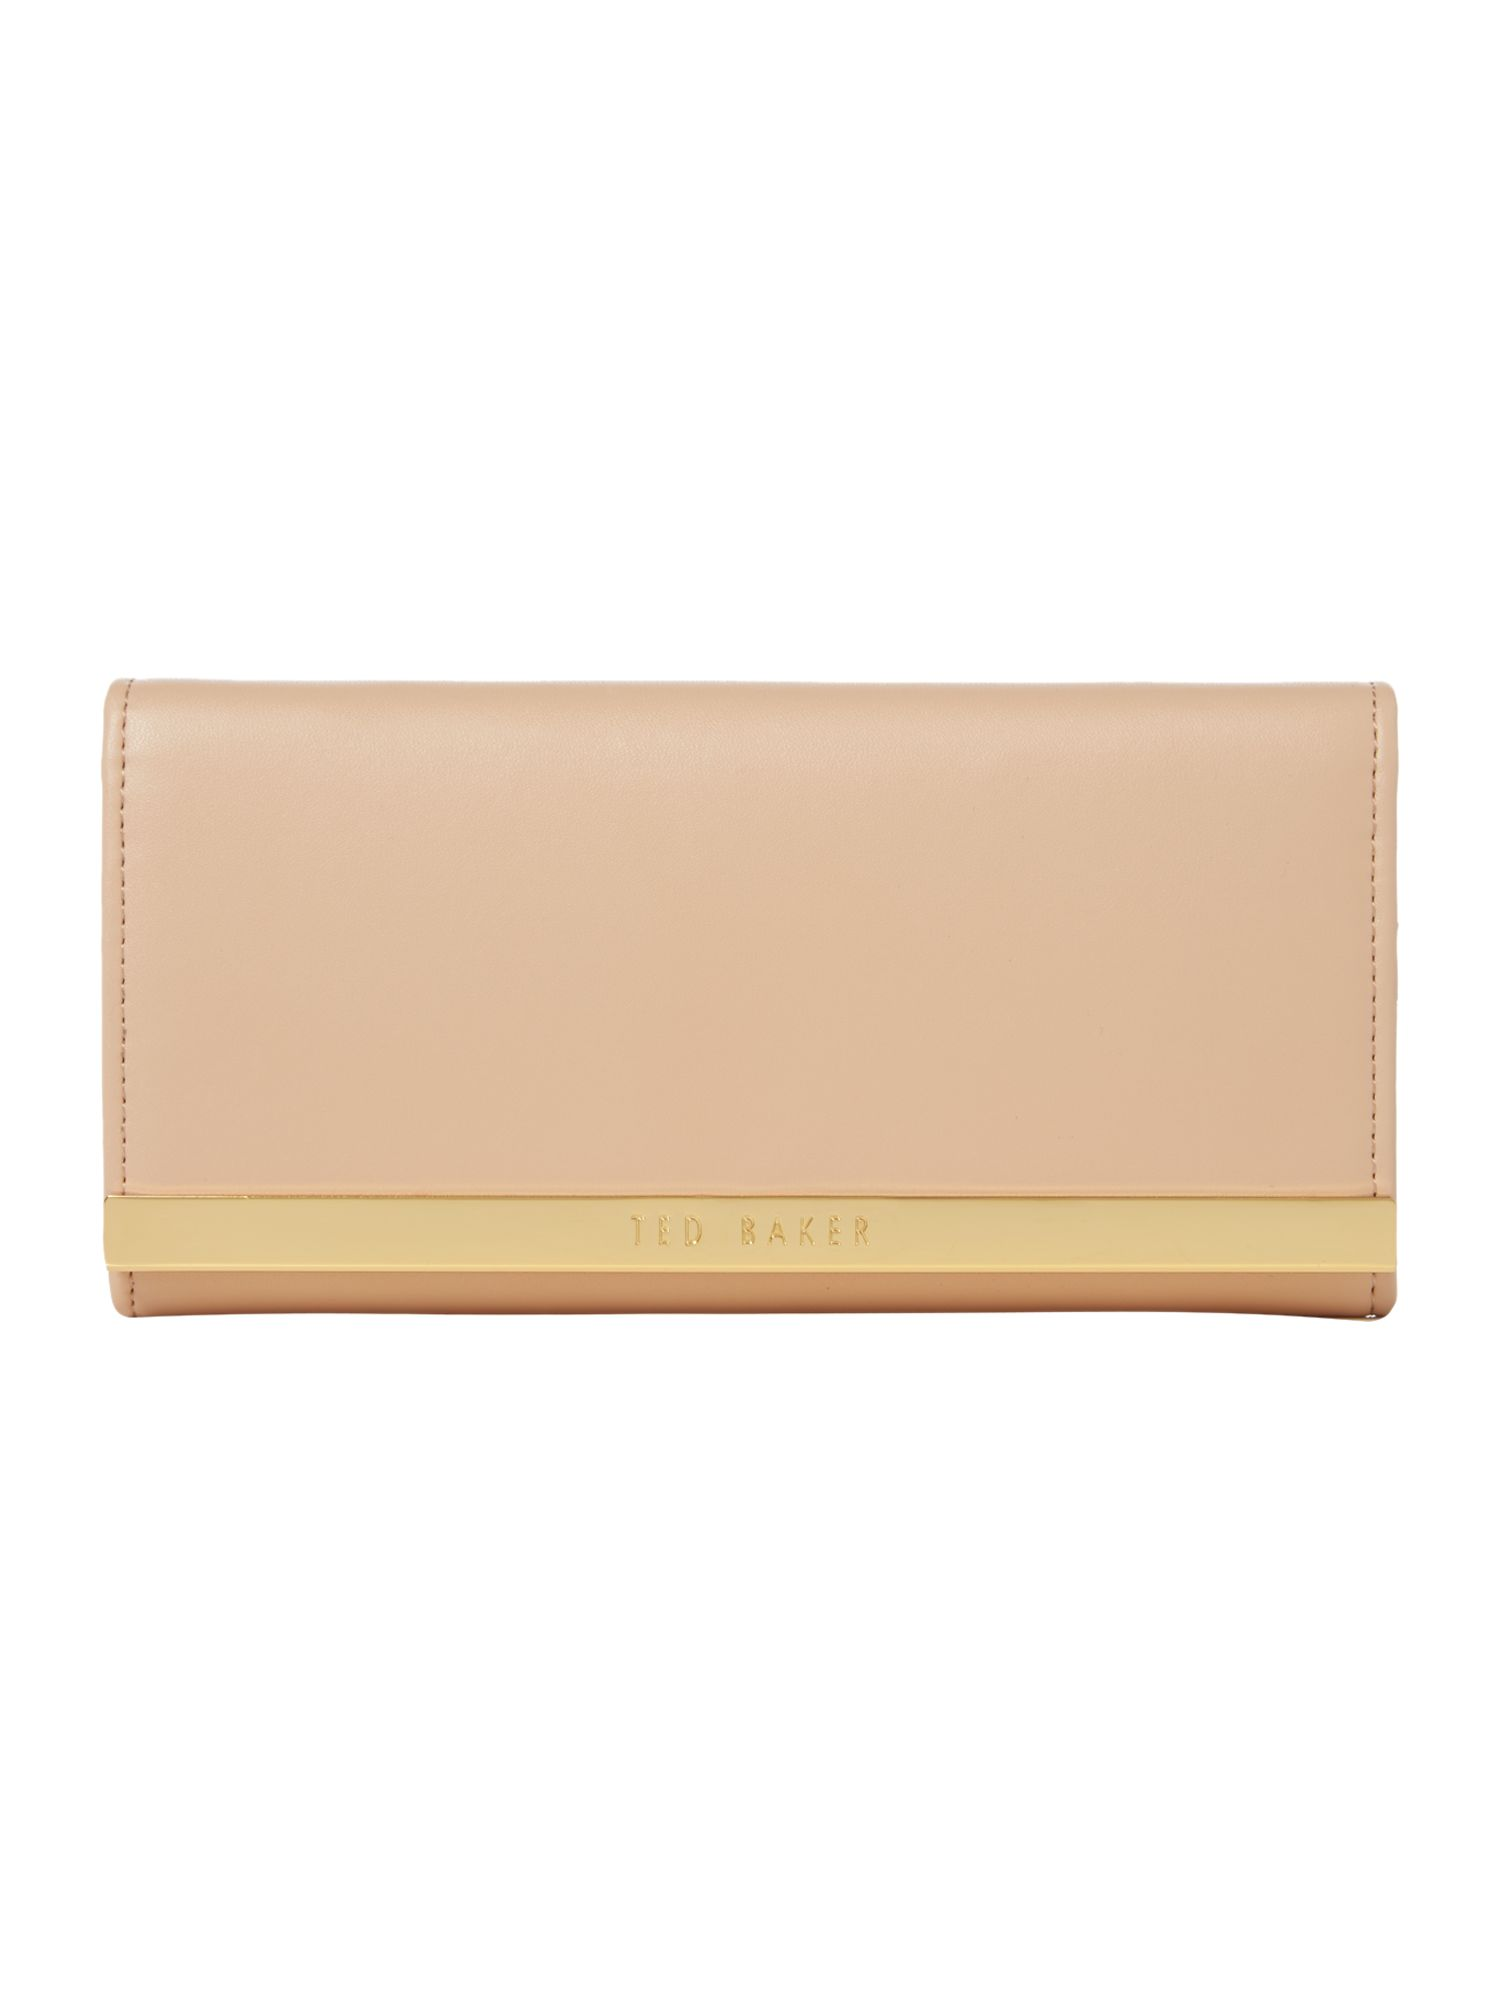 Taupe metal bar matinee flapover purse